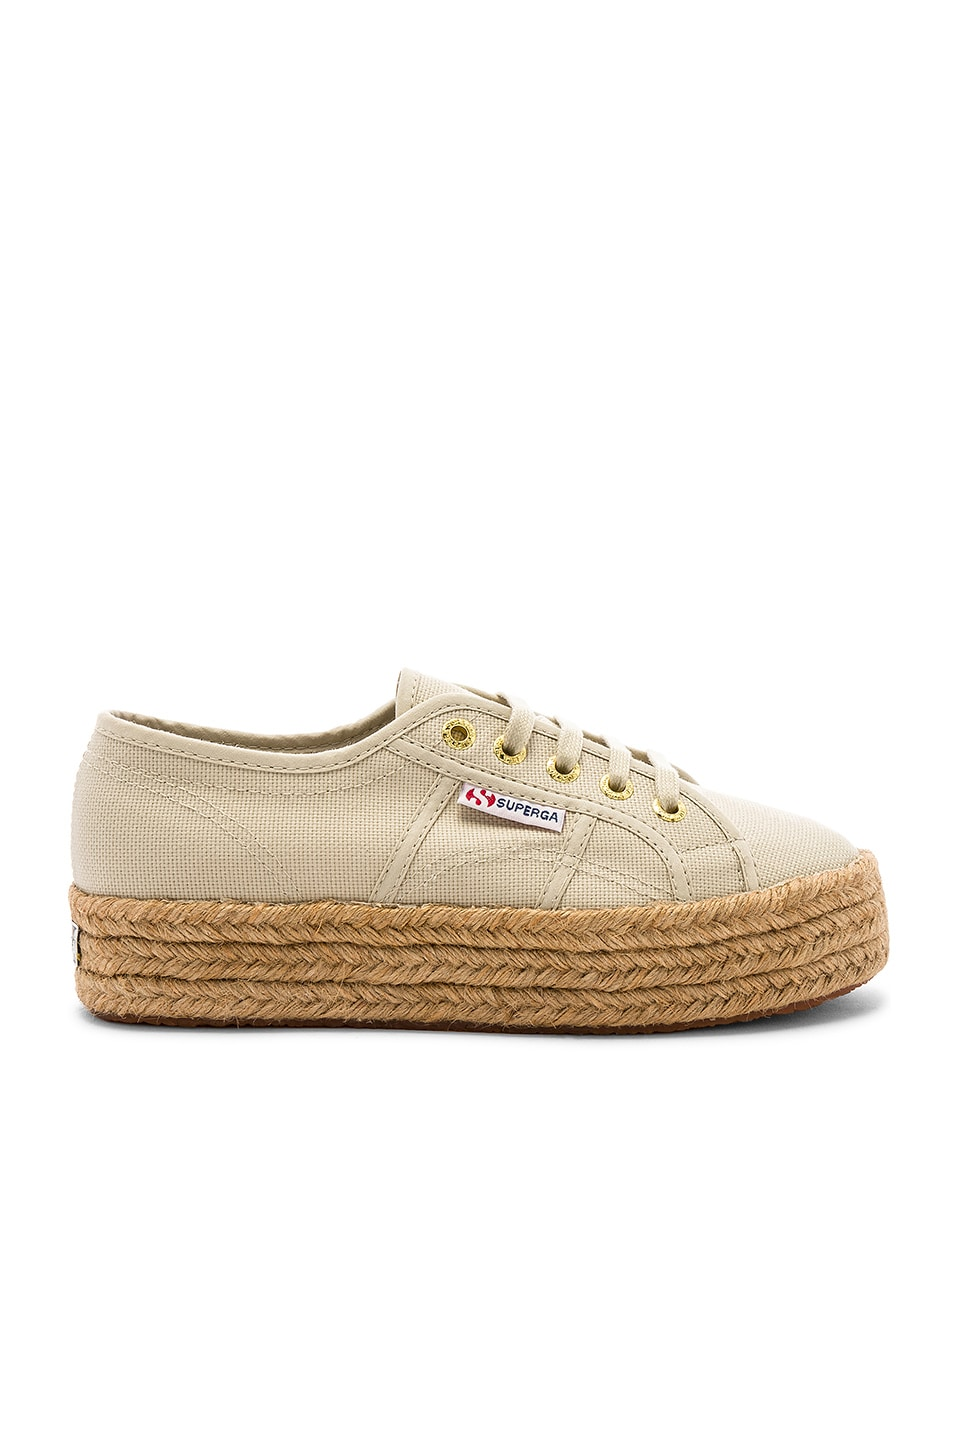 Superga 2730 COTROPEW Sneaker in Cafe Noir